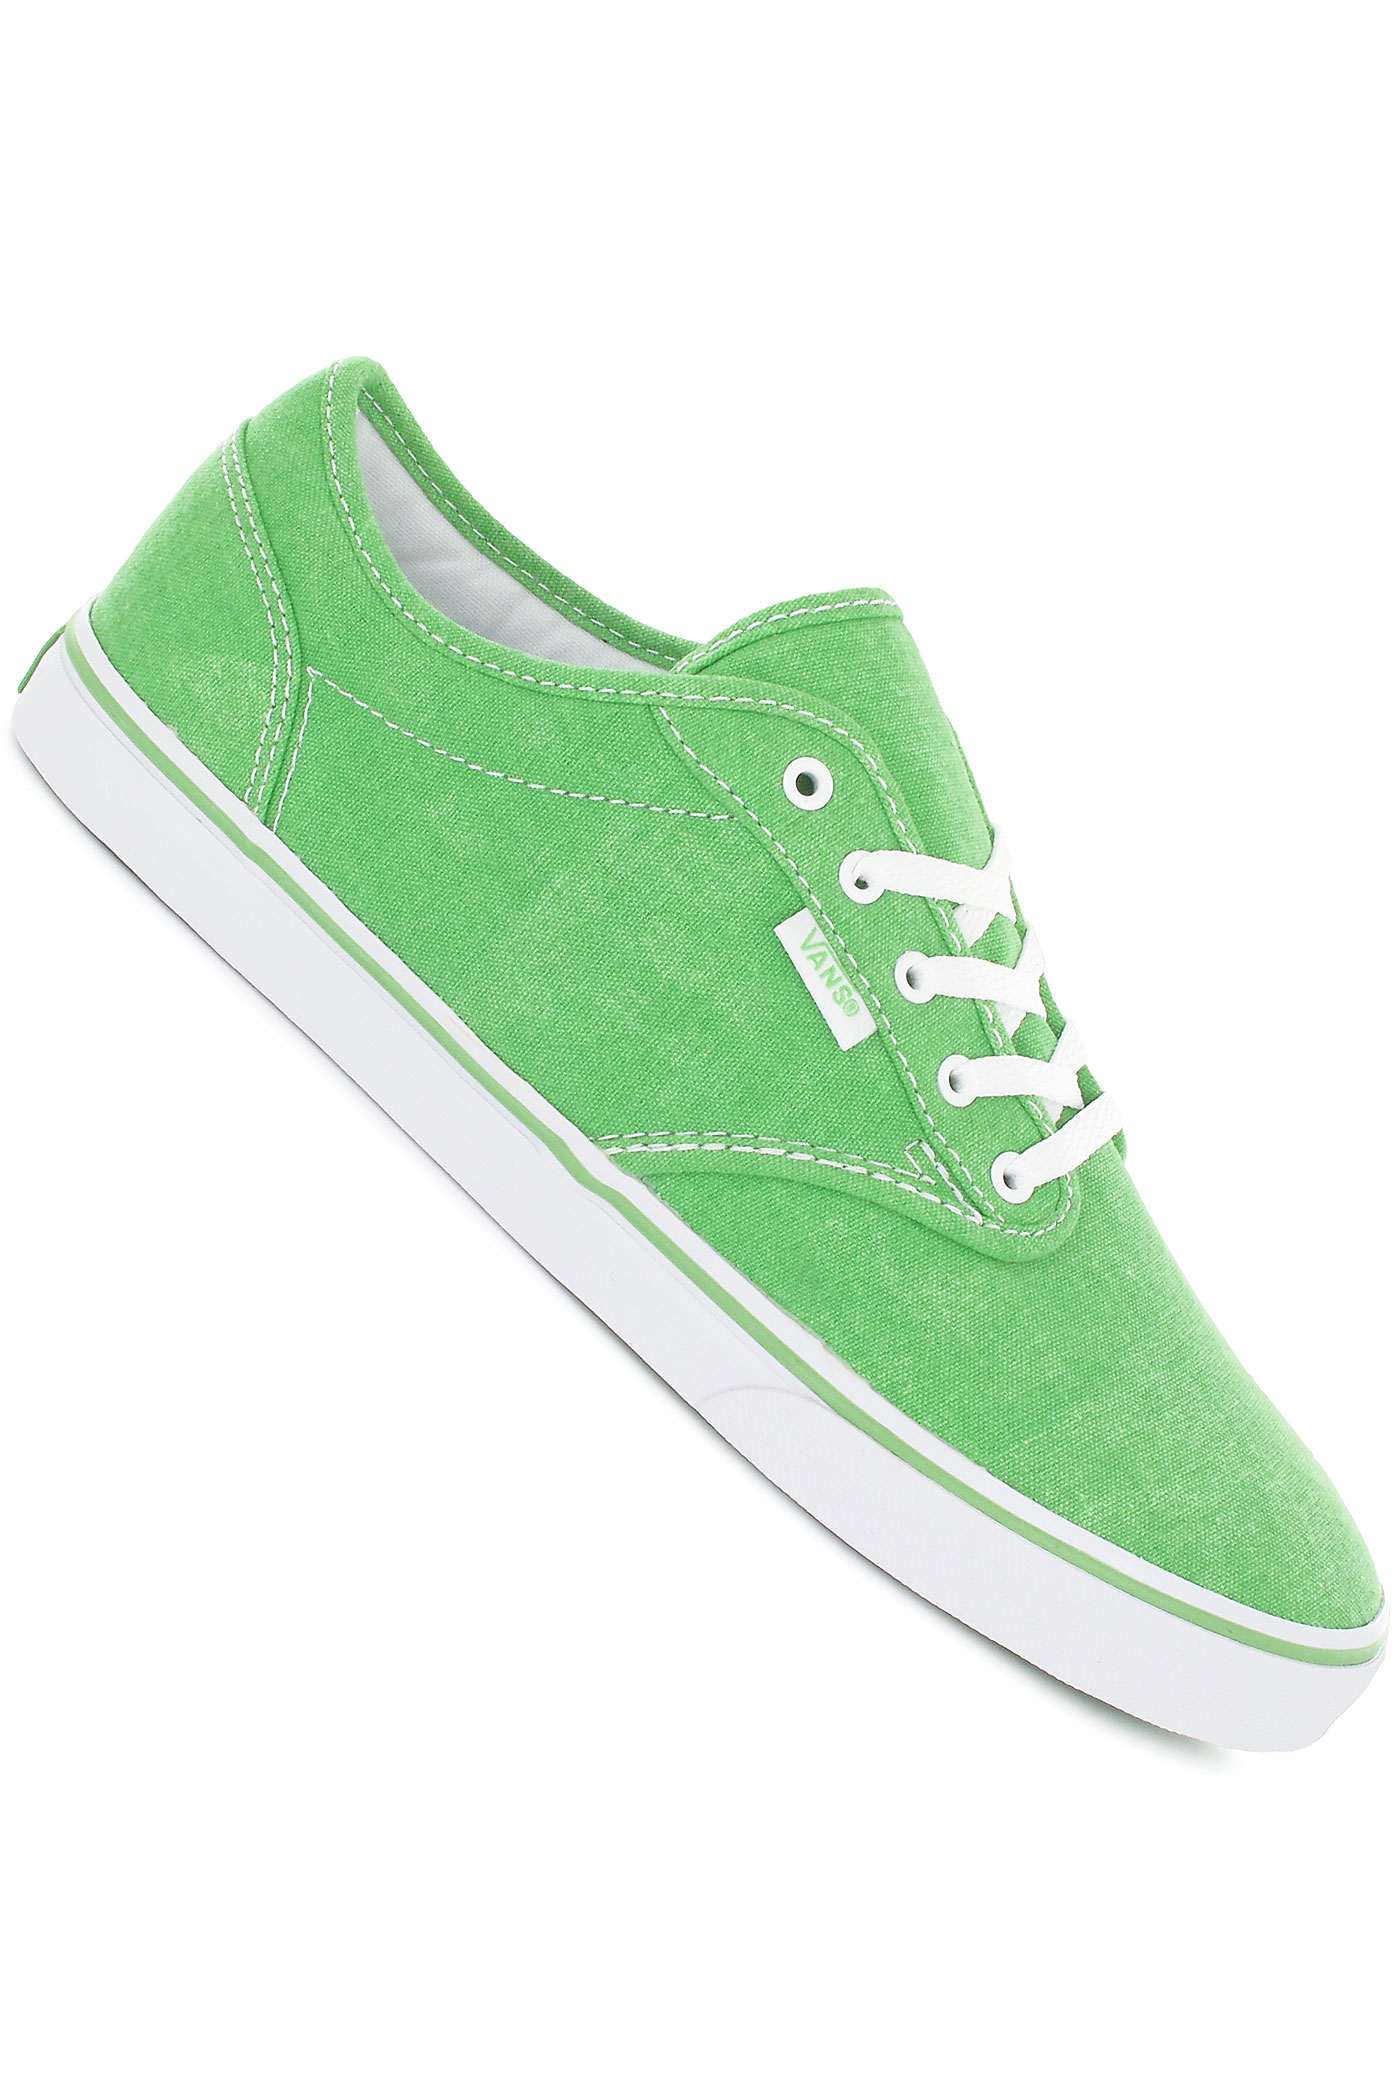 09b7e3cb104a7b shoes and Sneakers Vans Atwood Low Canvas Shoe women neon greenVans For  Girls Green